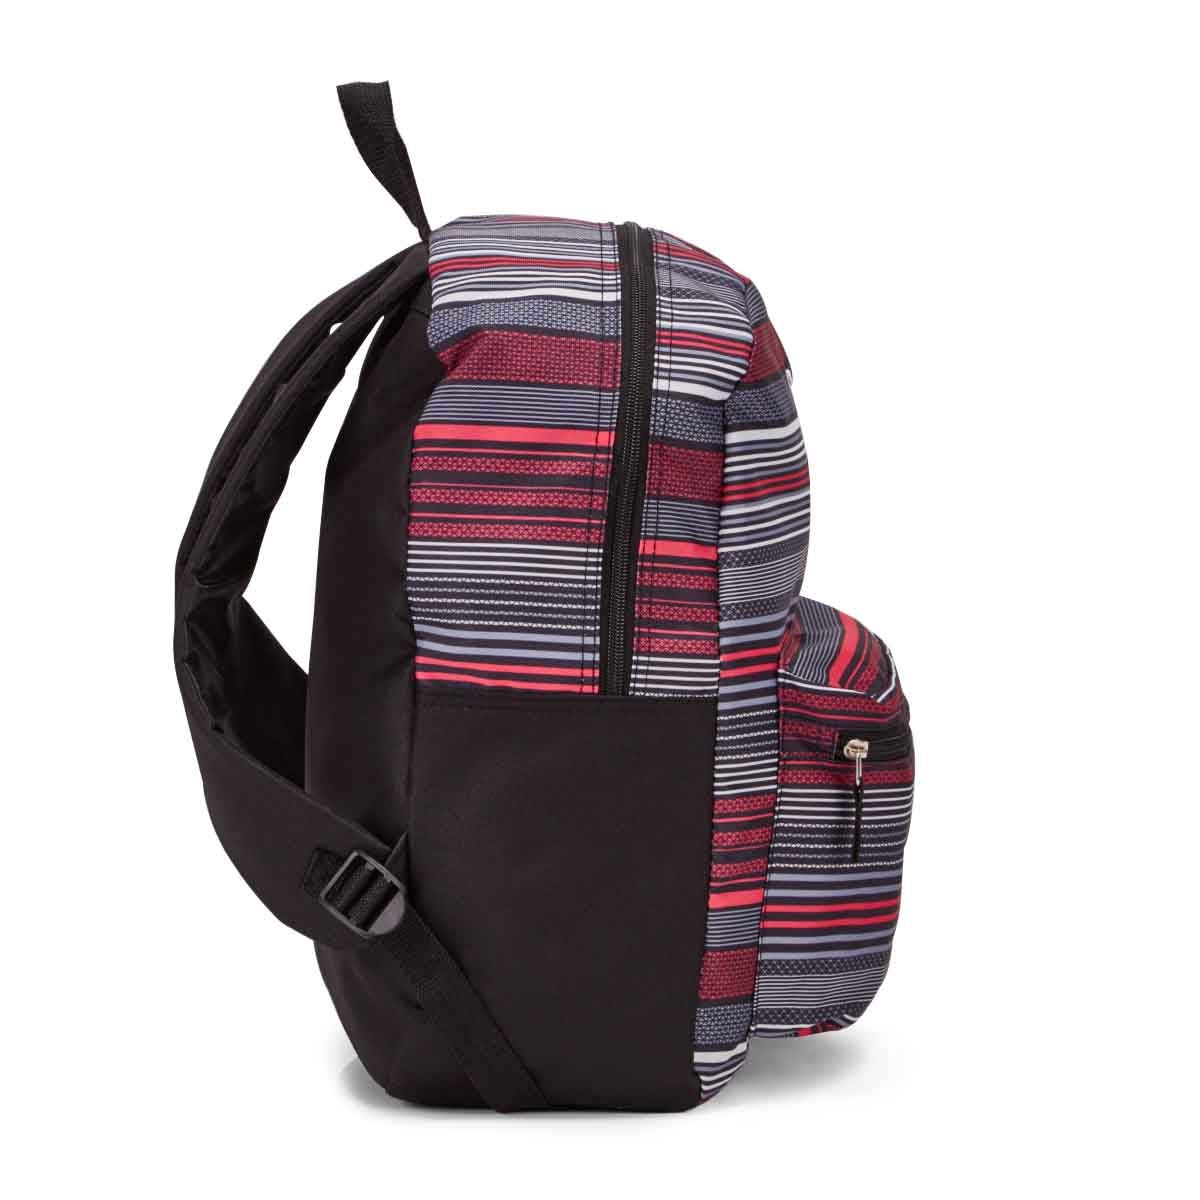 Lds Roots73 pnk/gry stripe backpack